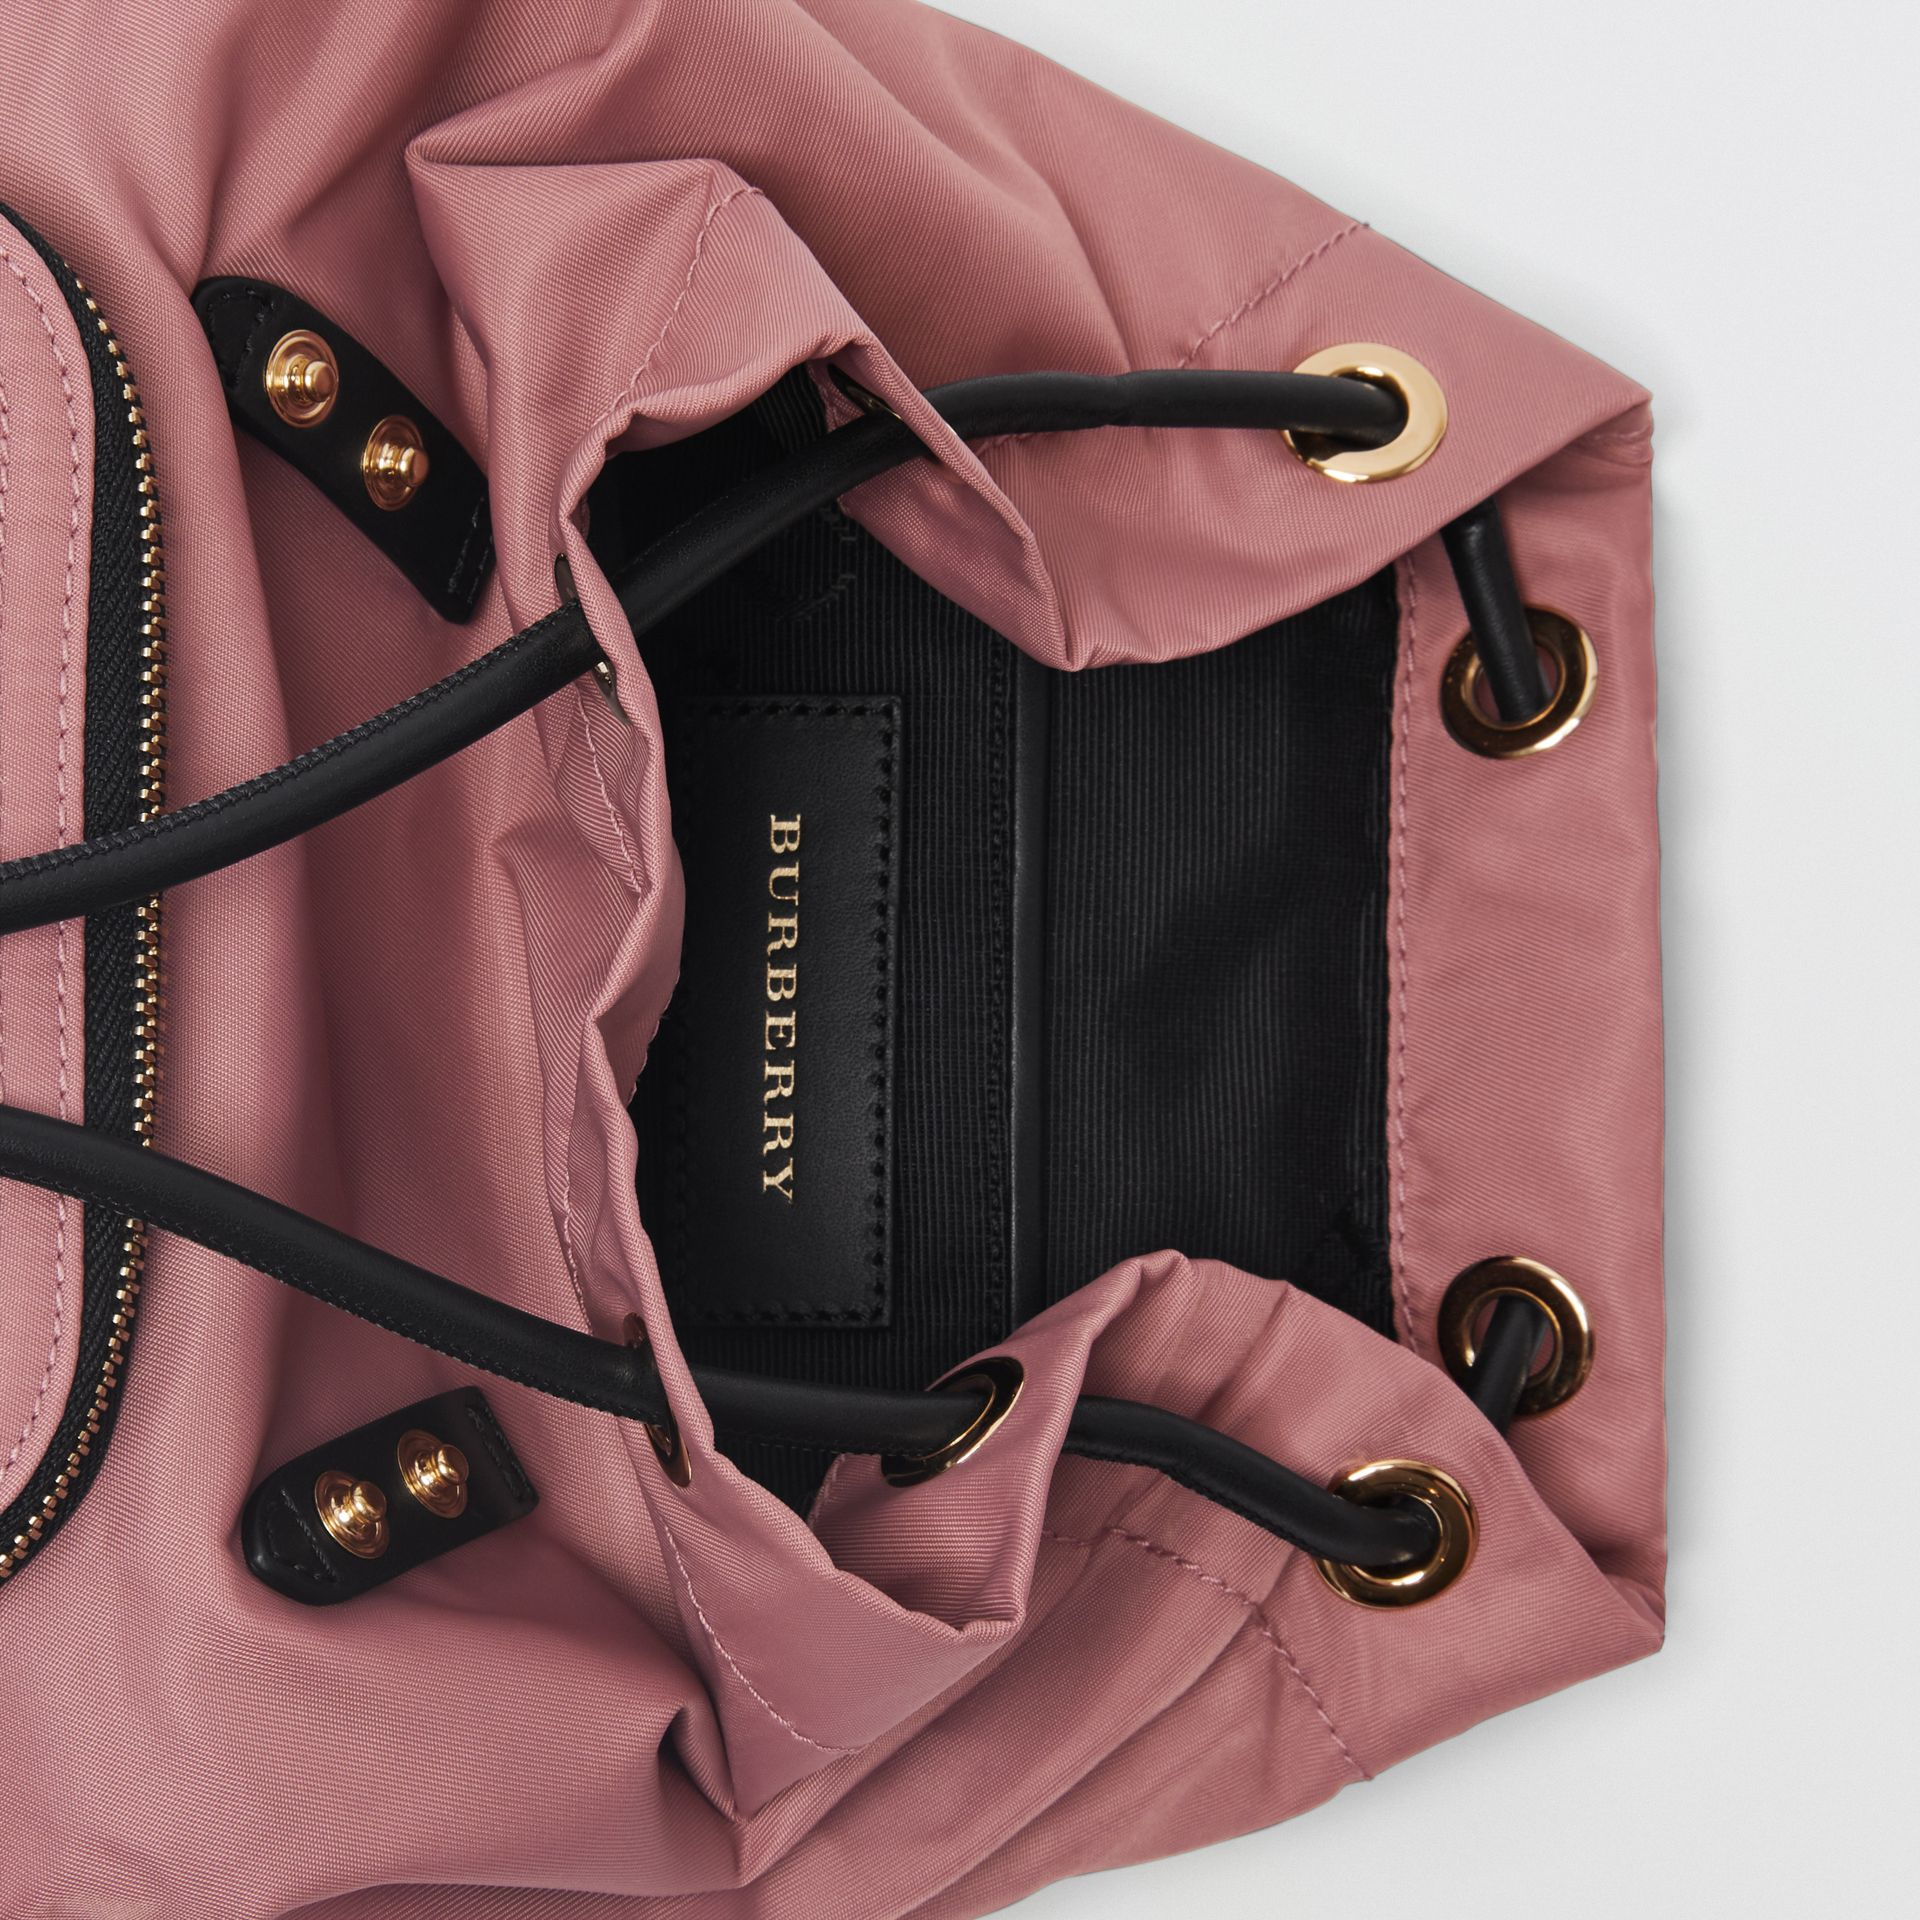 The Small Crossbody Rucksack in Nylon in Mauve Pink - Women | Burberry - gallery image 5